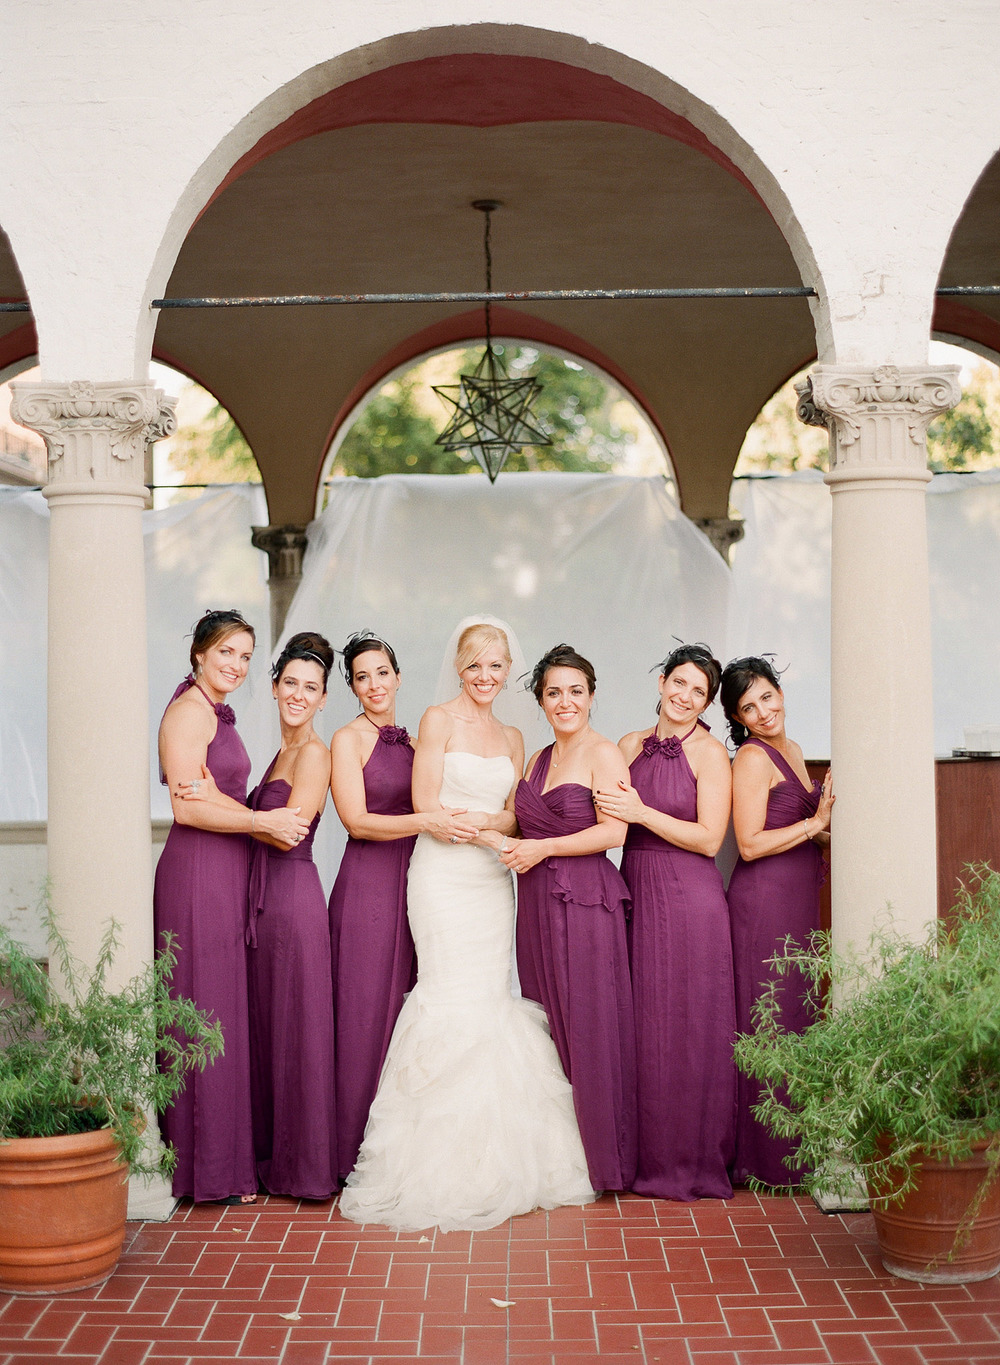 bride poses with the bridesmaids at her destination italian wedding at the Villa Terrace where Destination wedding photographer LExia Frank loves to shoot film for her luxury weddings